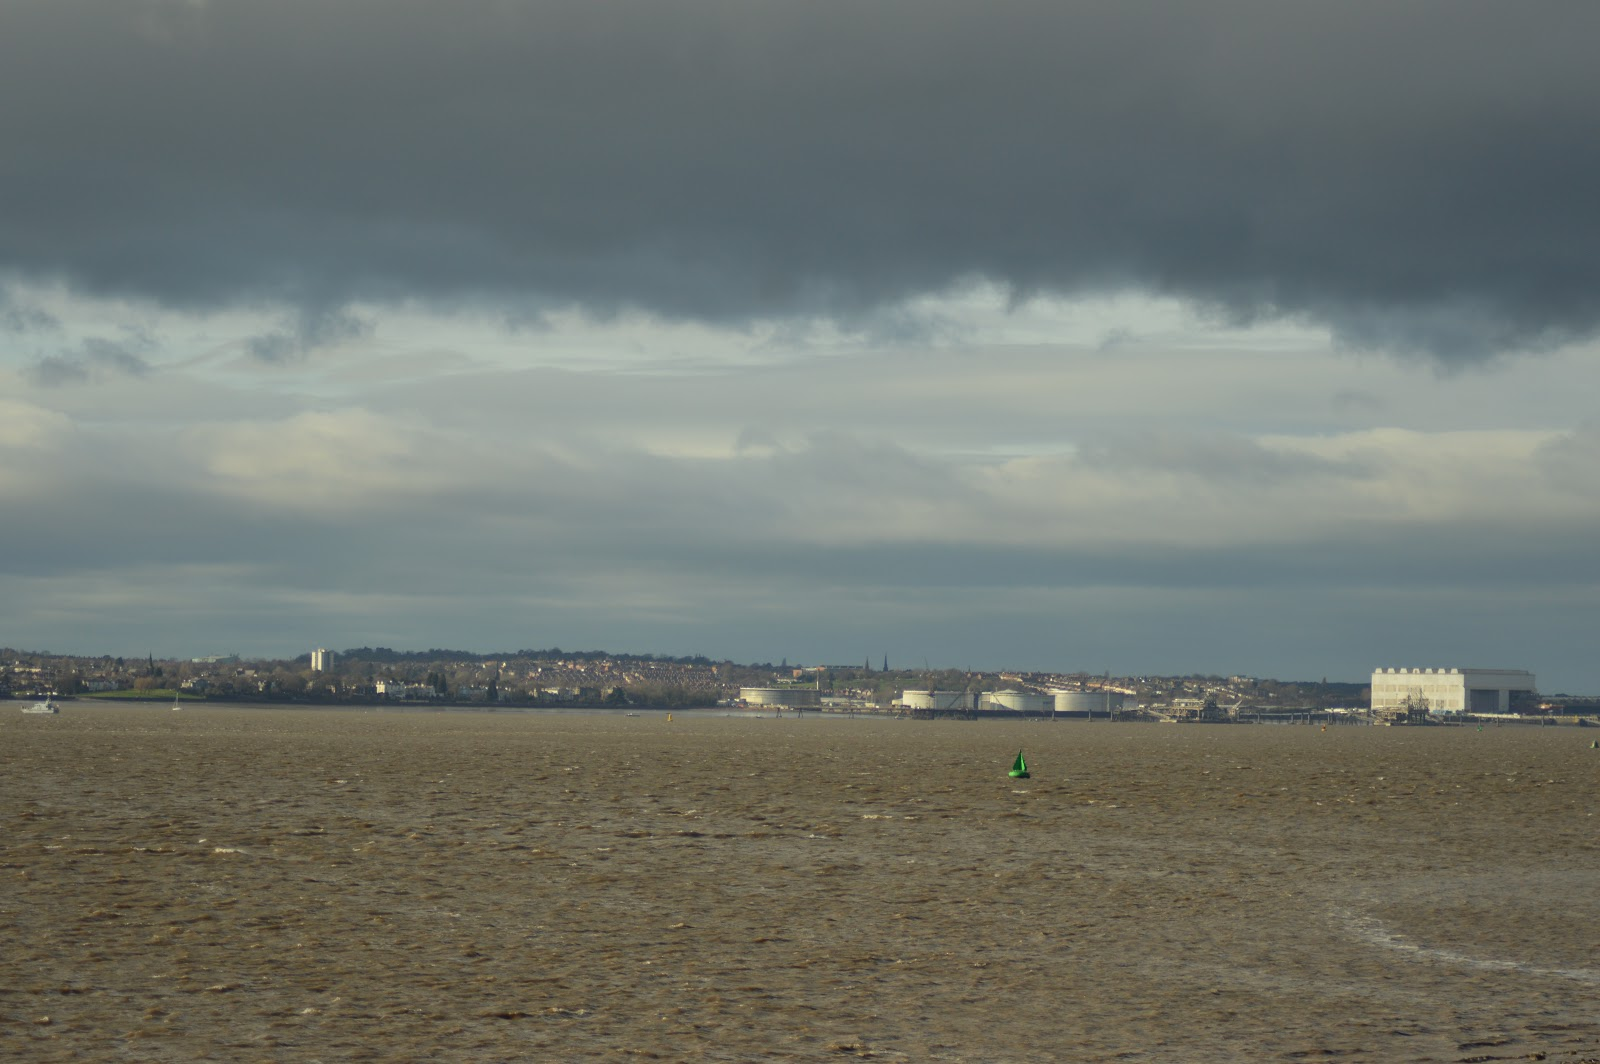 A view of the river Mersey